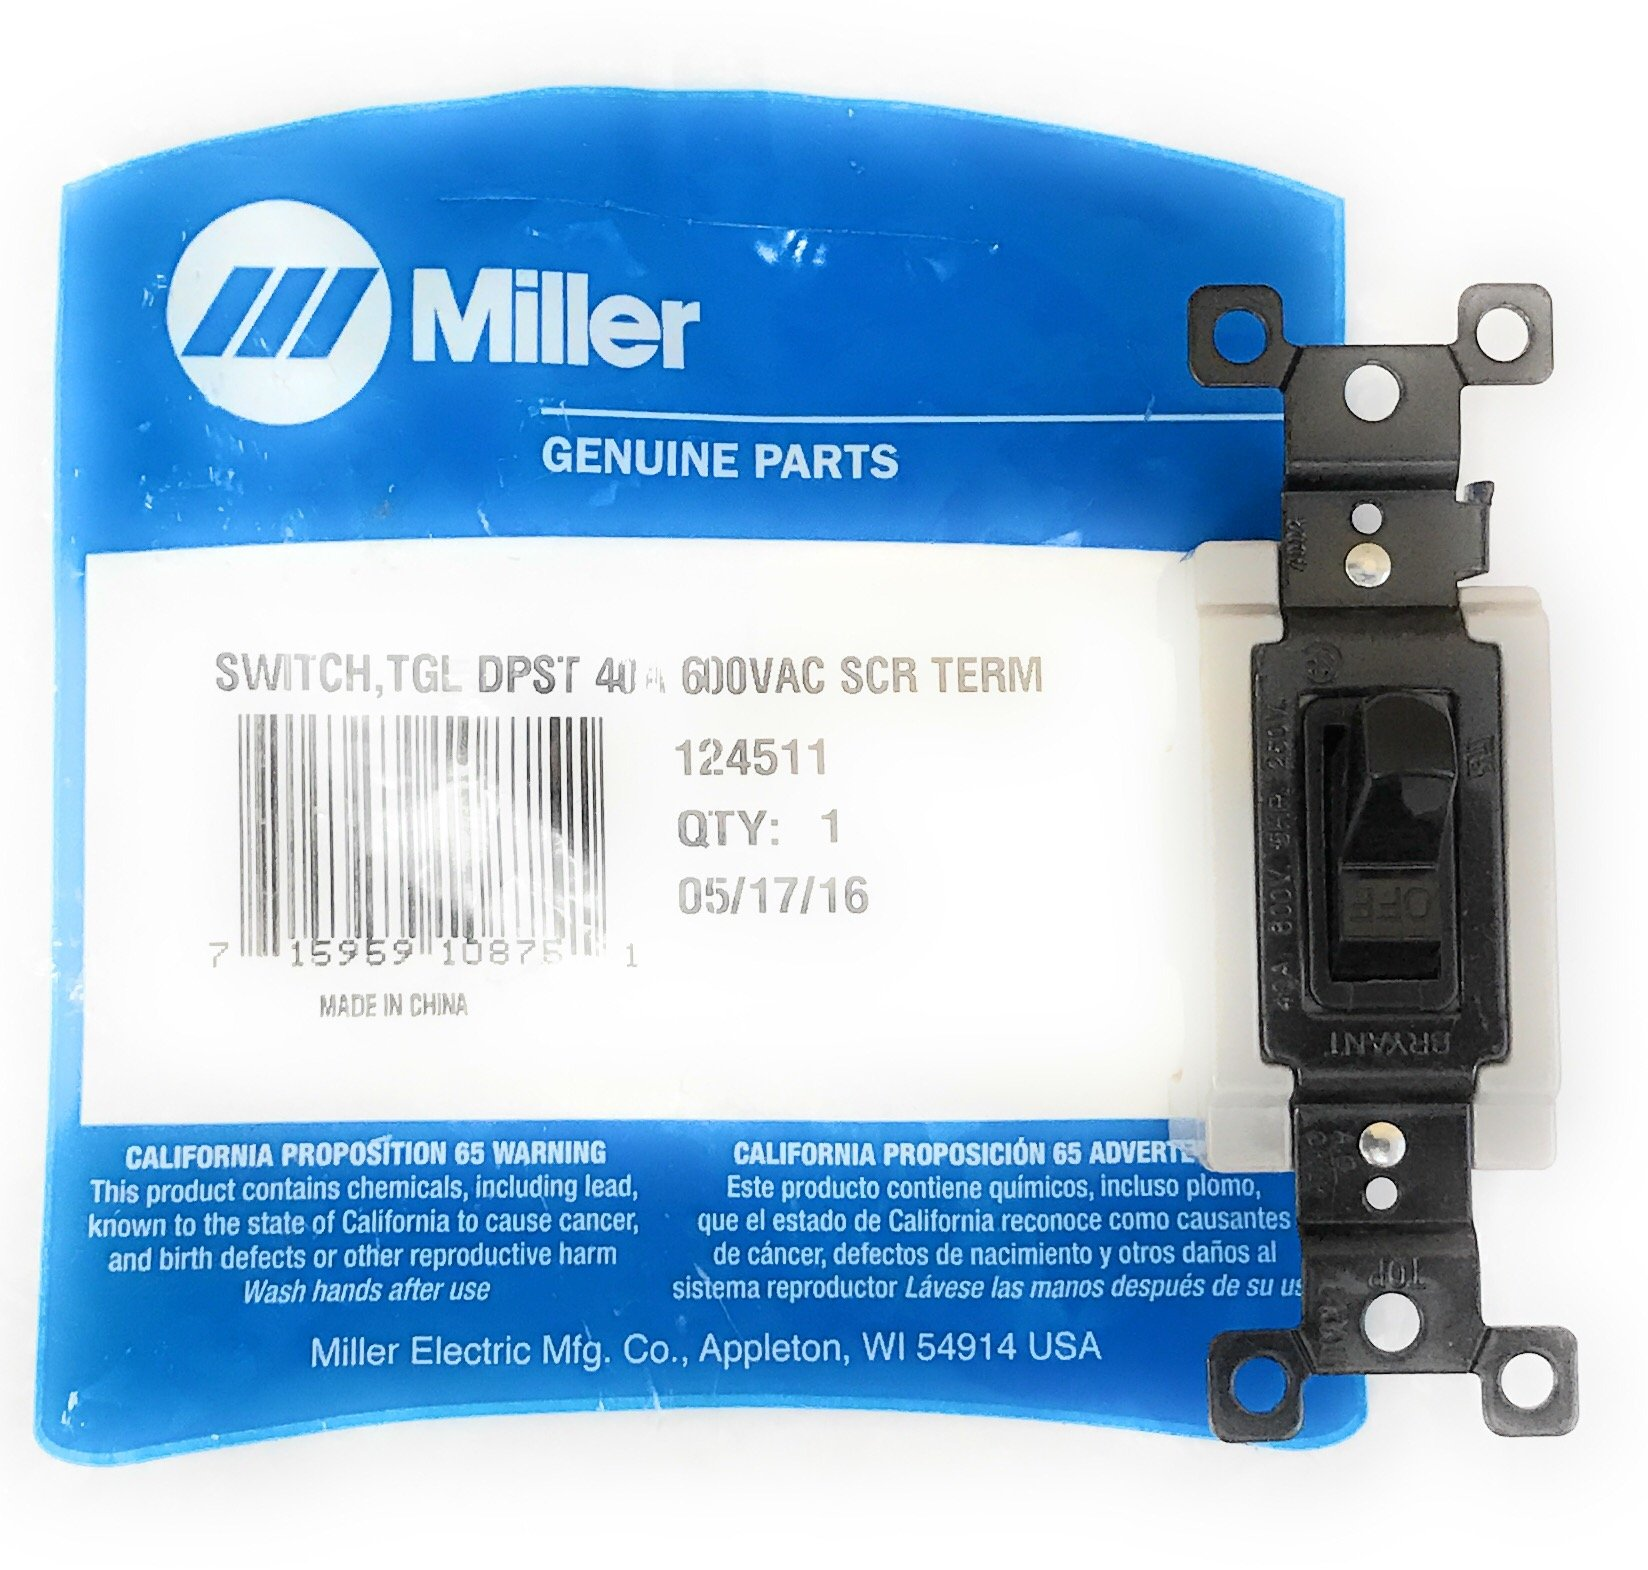 124511 Miller Toggle Switch 40 Amp 600 VAC